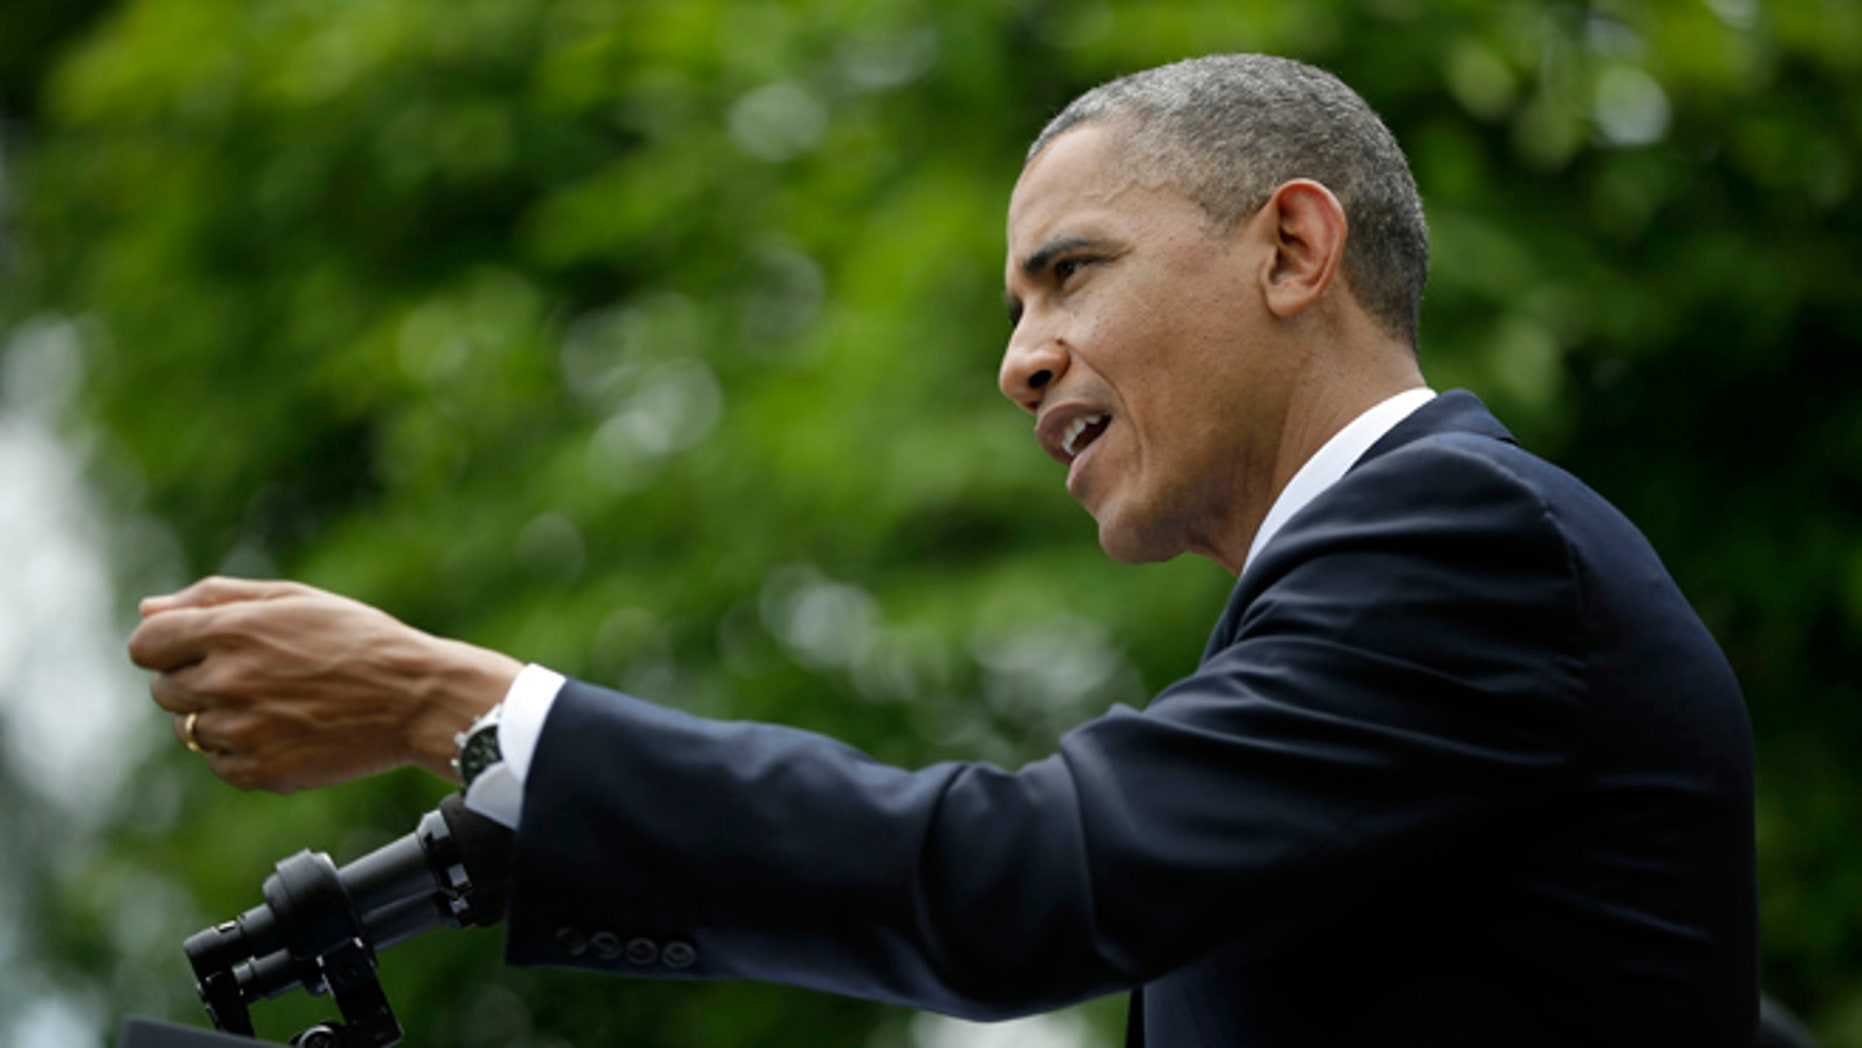 May 16, 2013: President Obama gestures as he answers questions during his joint news conference with Turkey's Prime Minister Recep Tayyip Erdogan in the Rose Garden of the White House.